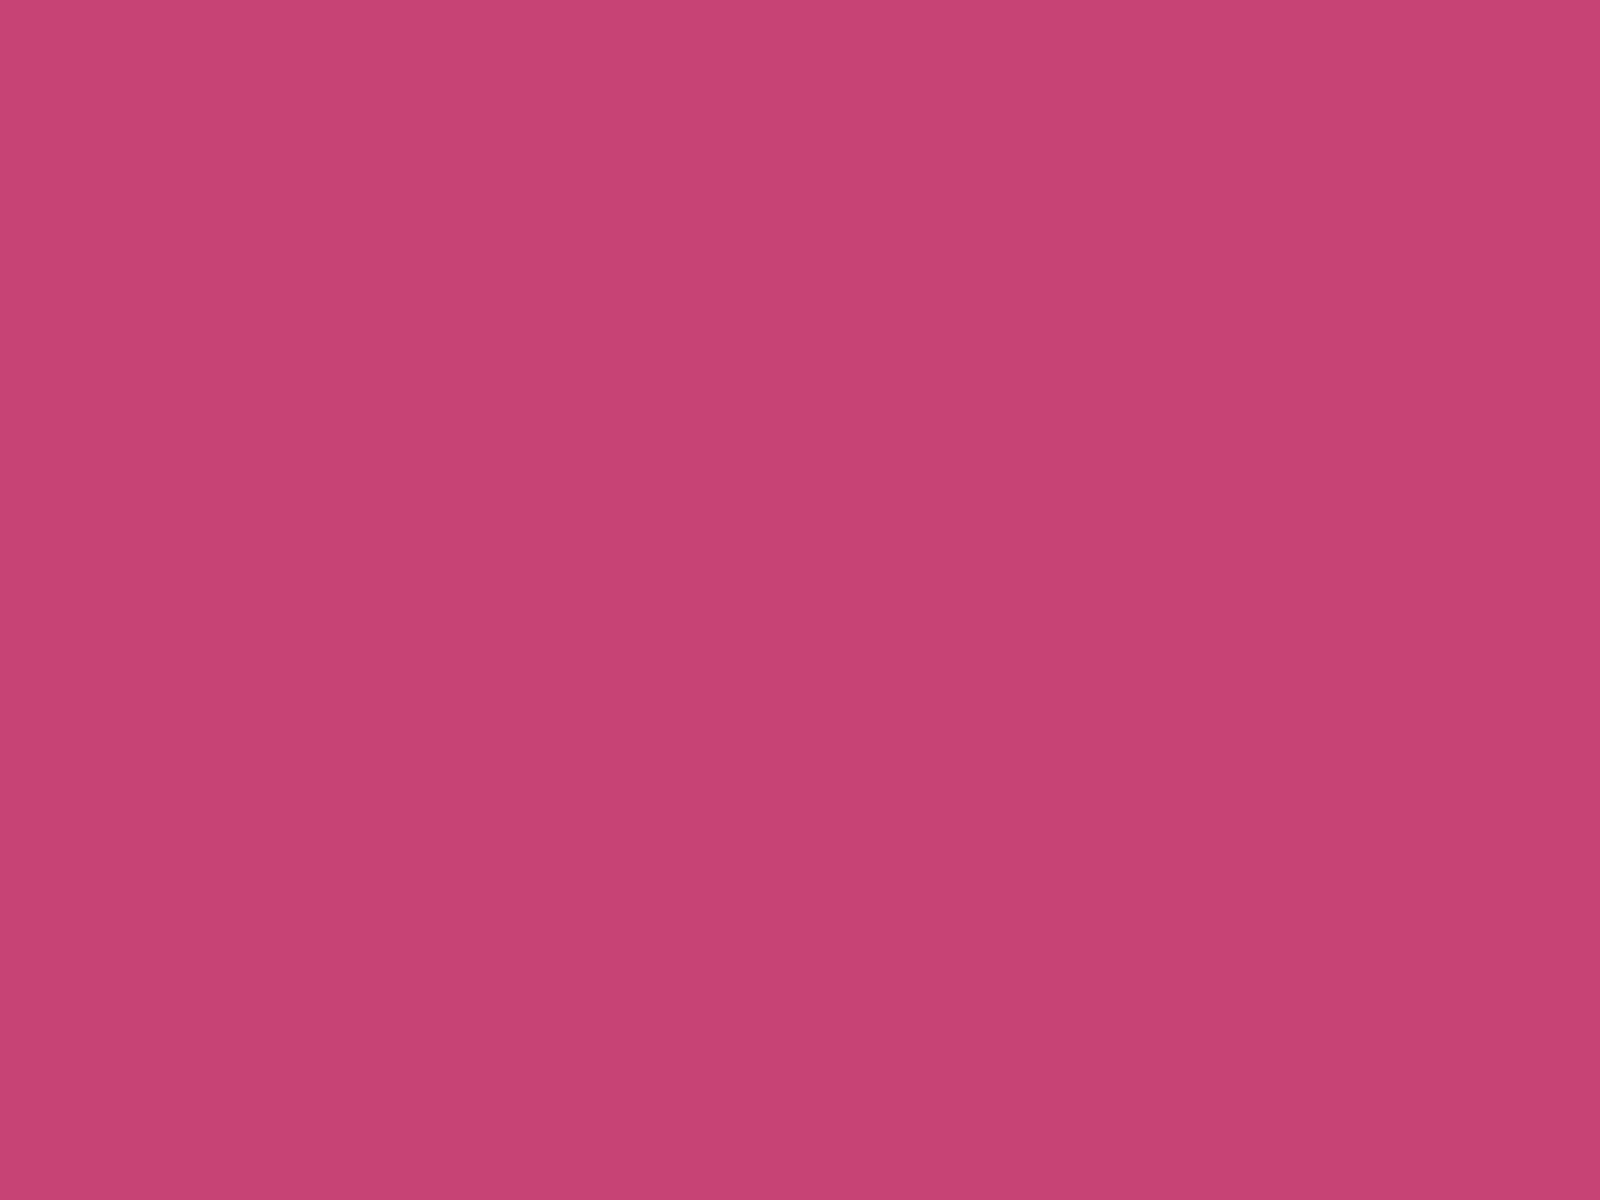 1600x1200 Fuchsia Rose Solid Color Background